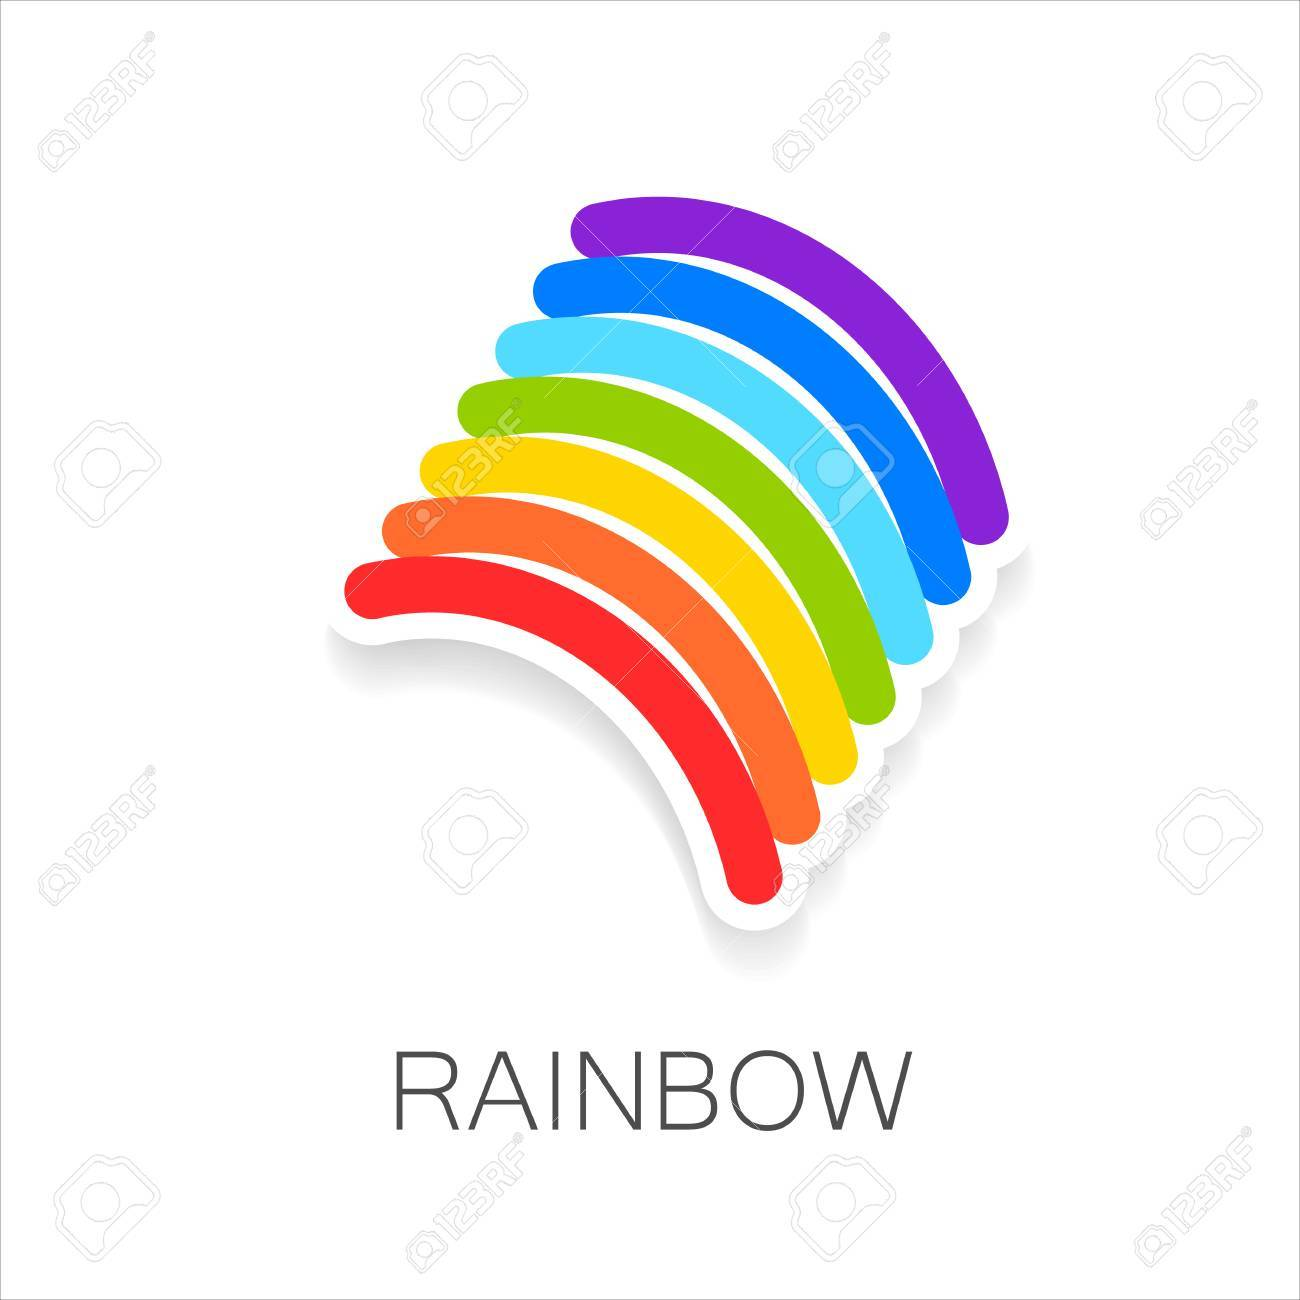 Rainbow Template | Rainbow Template Logo Symbol Of Happiness And Success Royalty